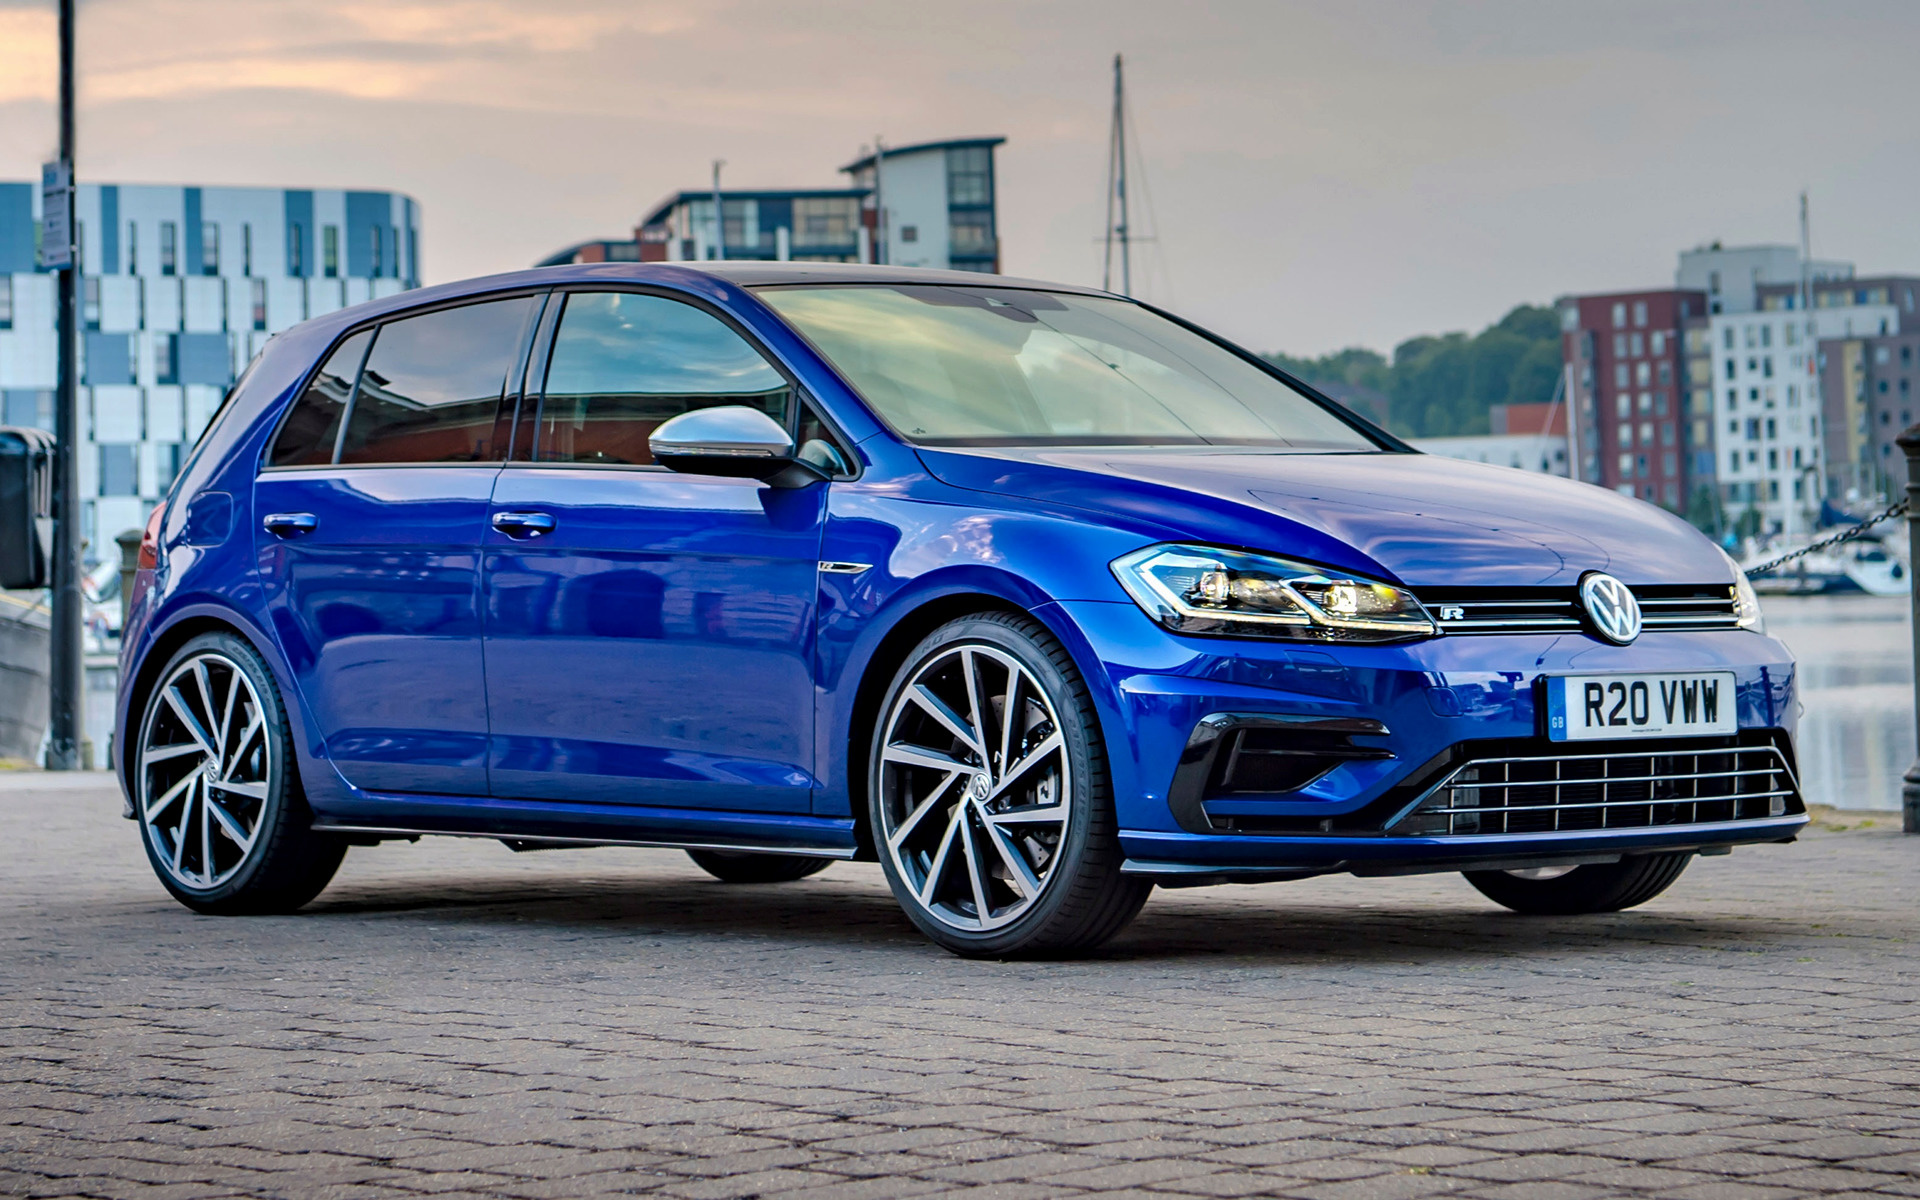 Performance Ford Lincoln >> Volkswagen Golf R Performance Pack 5-door (2018) UK Wallpapers and HD Images - Car Pixel